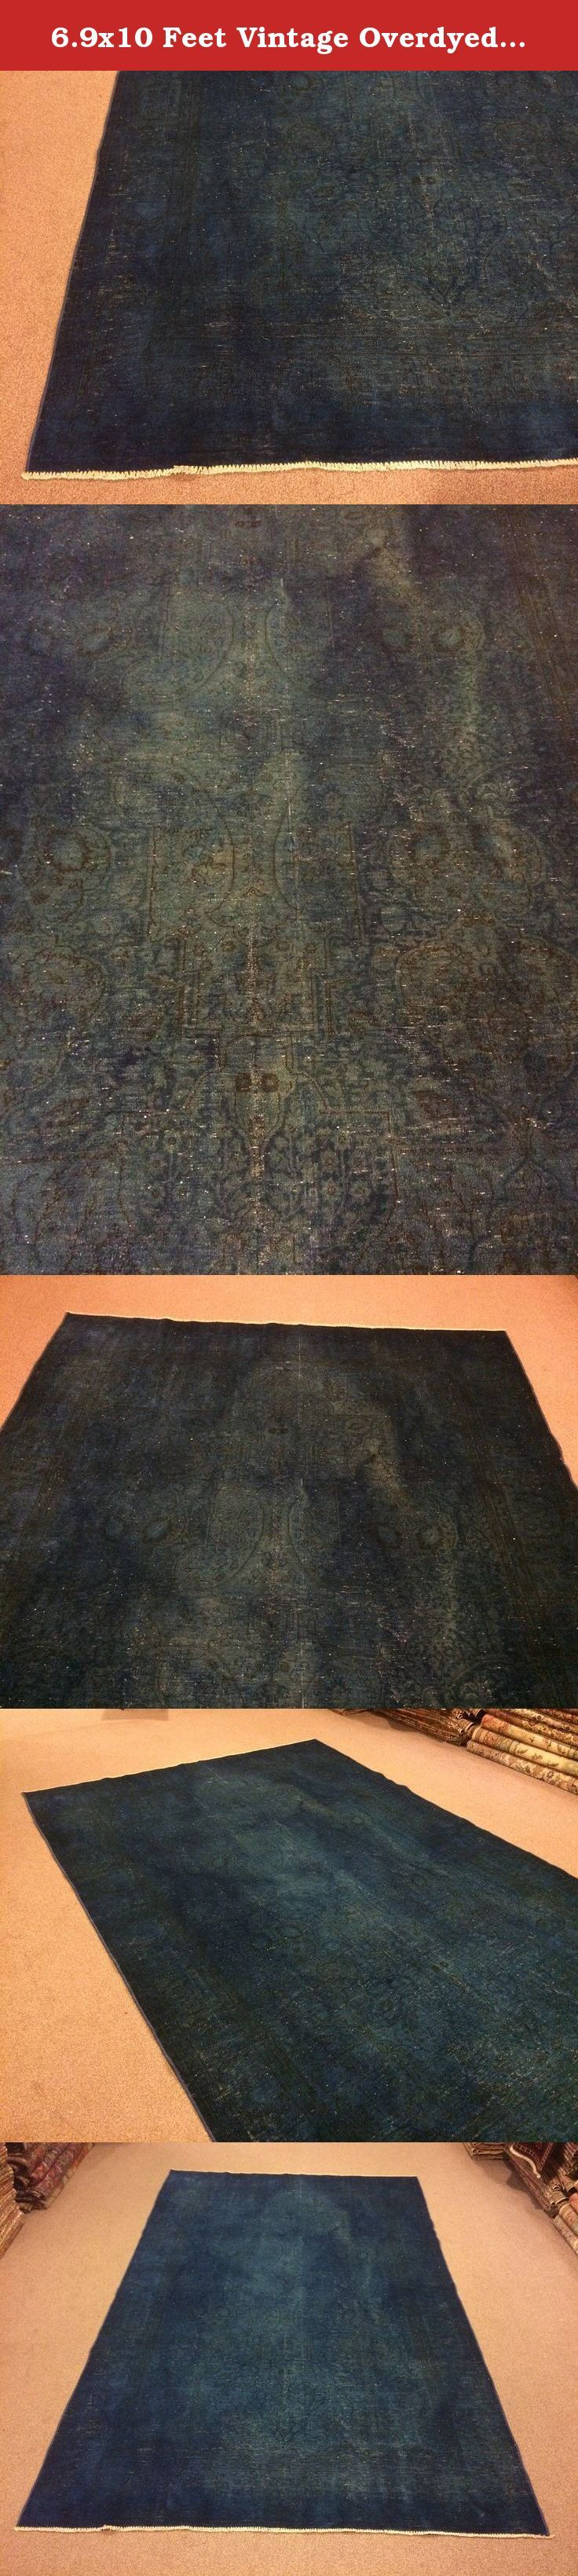 6.9x10 Feet Vintage Overdyed Dark Blue Carpet Dark Blue Rug Vintage Rug Vintage Carpet Code:B484. It is %100 handmade carpet.All colours are natural dyed. Size:6.9x10 feet 204x304 cm Material:wool on cotton Vintage Overyed Rugs which are dying of old handmade rugs are a new trend in the world. Old handmade rugs are collected. They are put into a wooden spinner to get rid of dusts on the rugs. After this process, the rugs get shaved carefully. Then, they get washed with carpet washing...